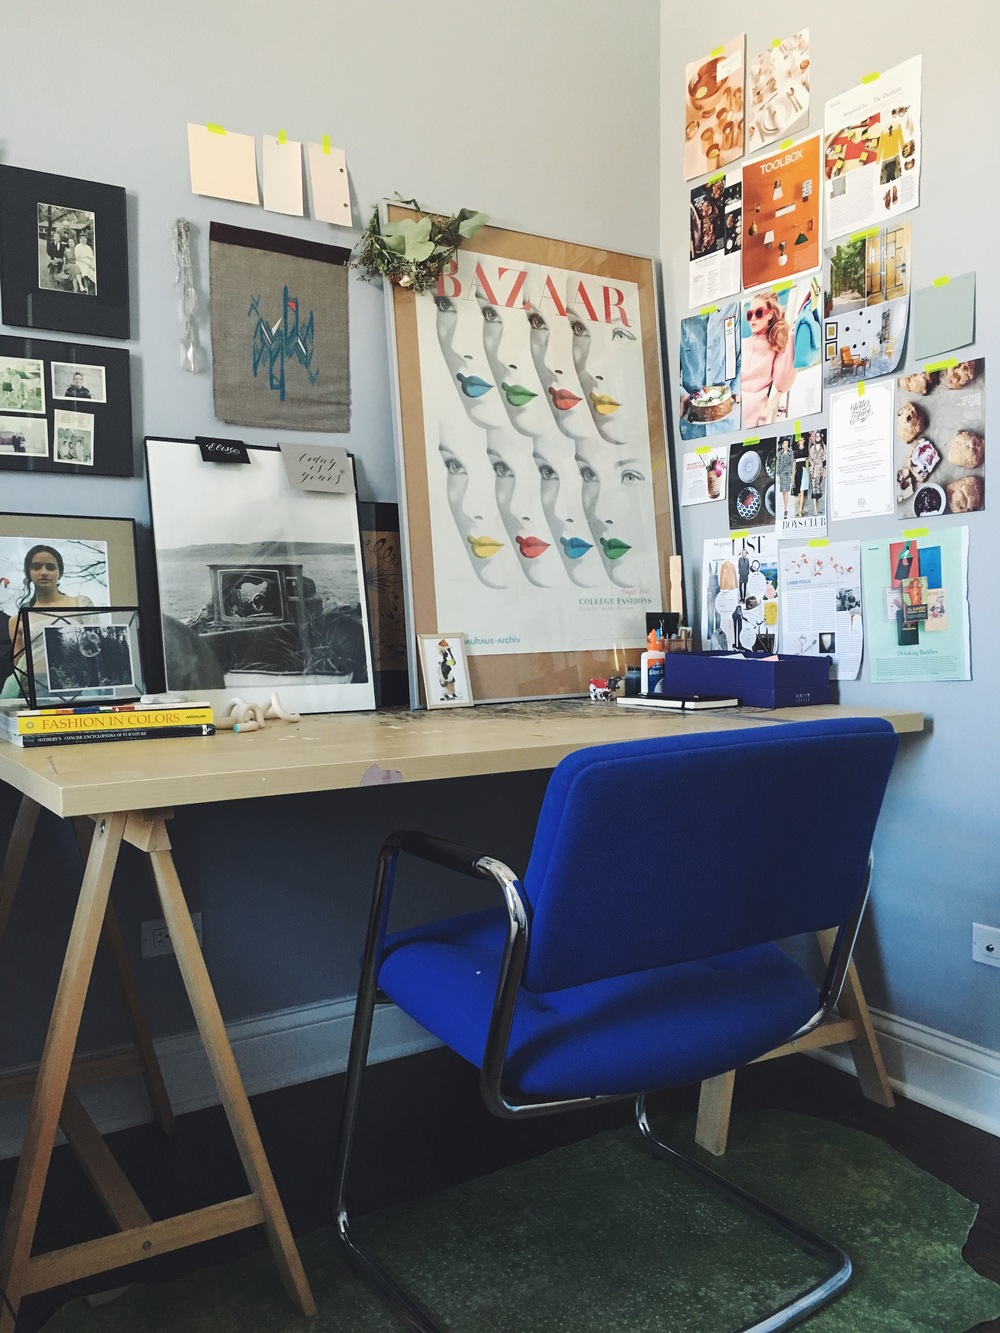 Take a photo of your workspace